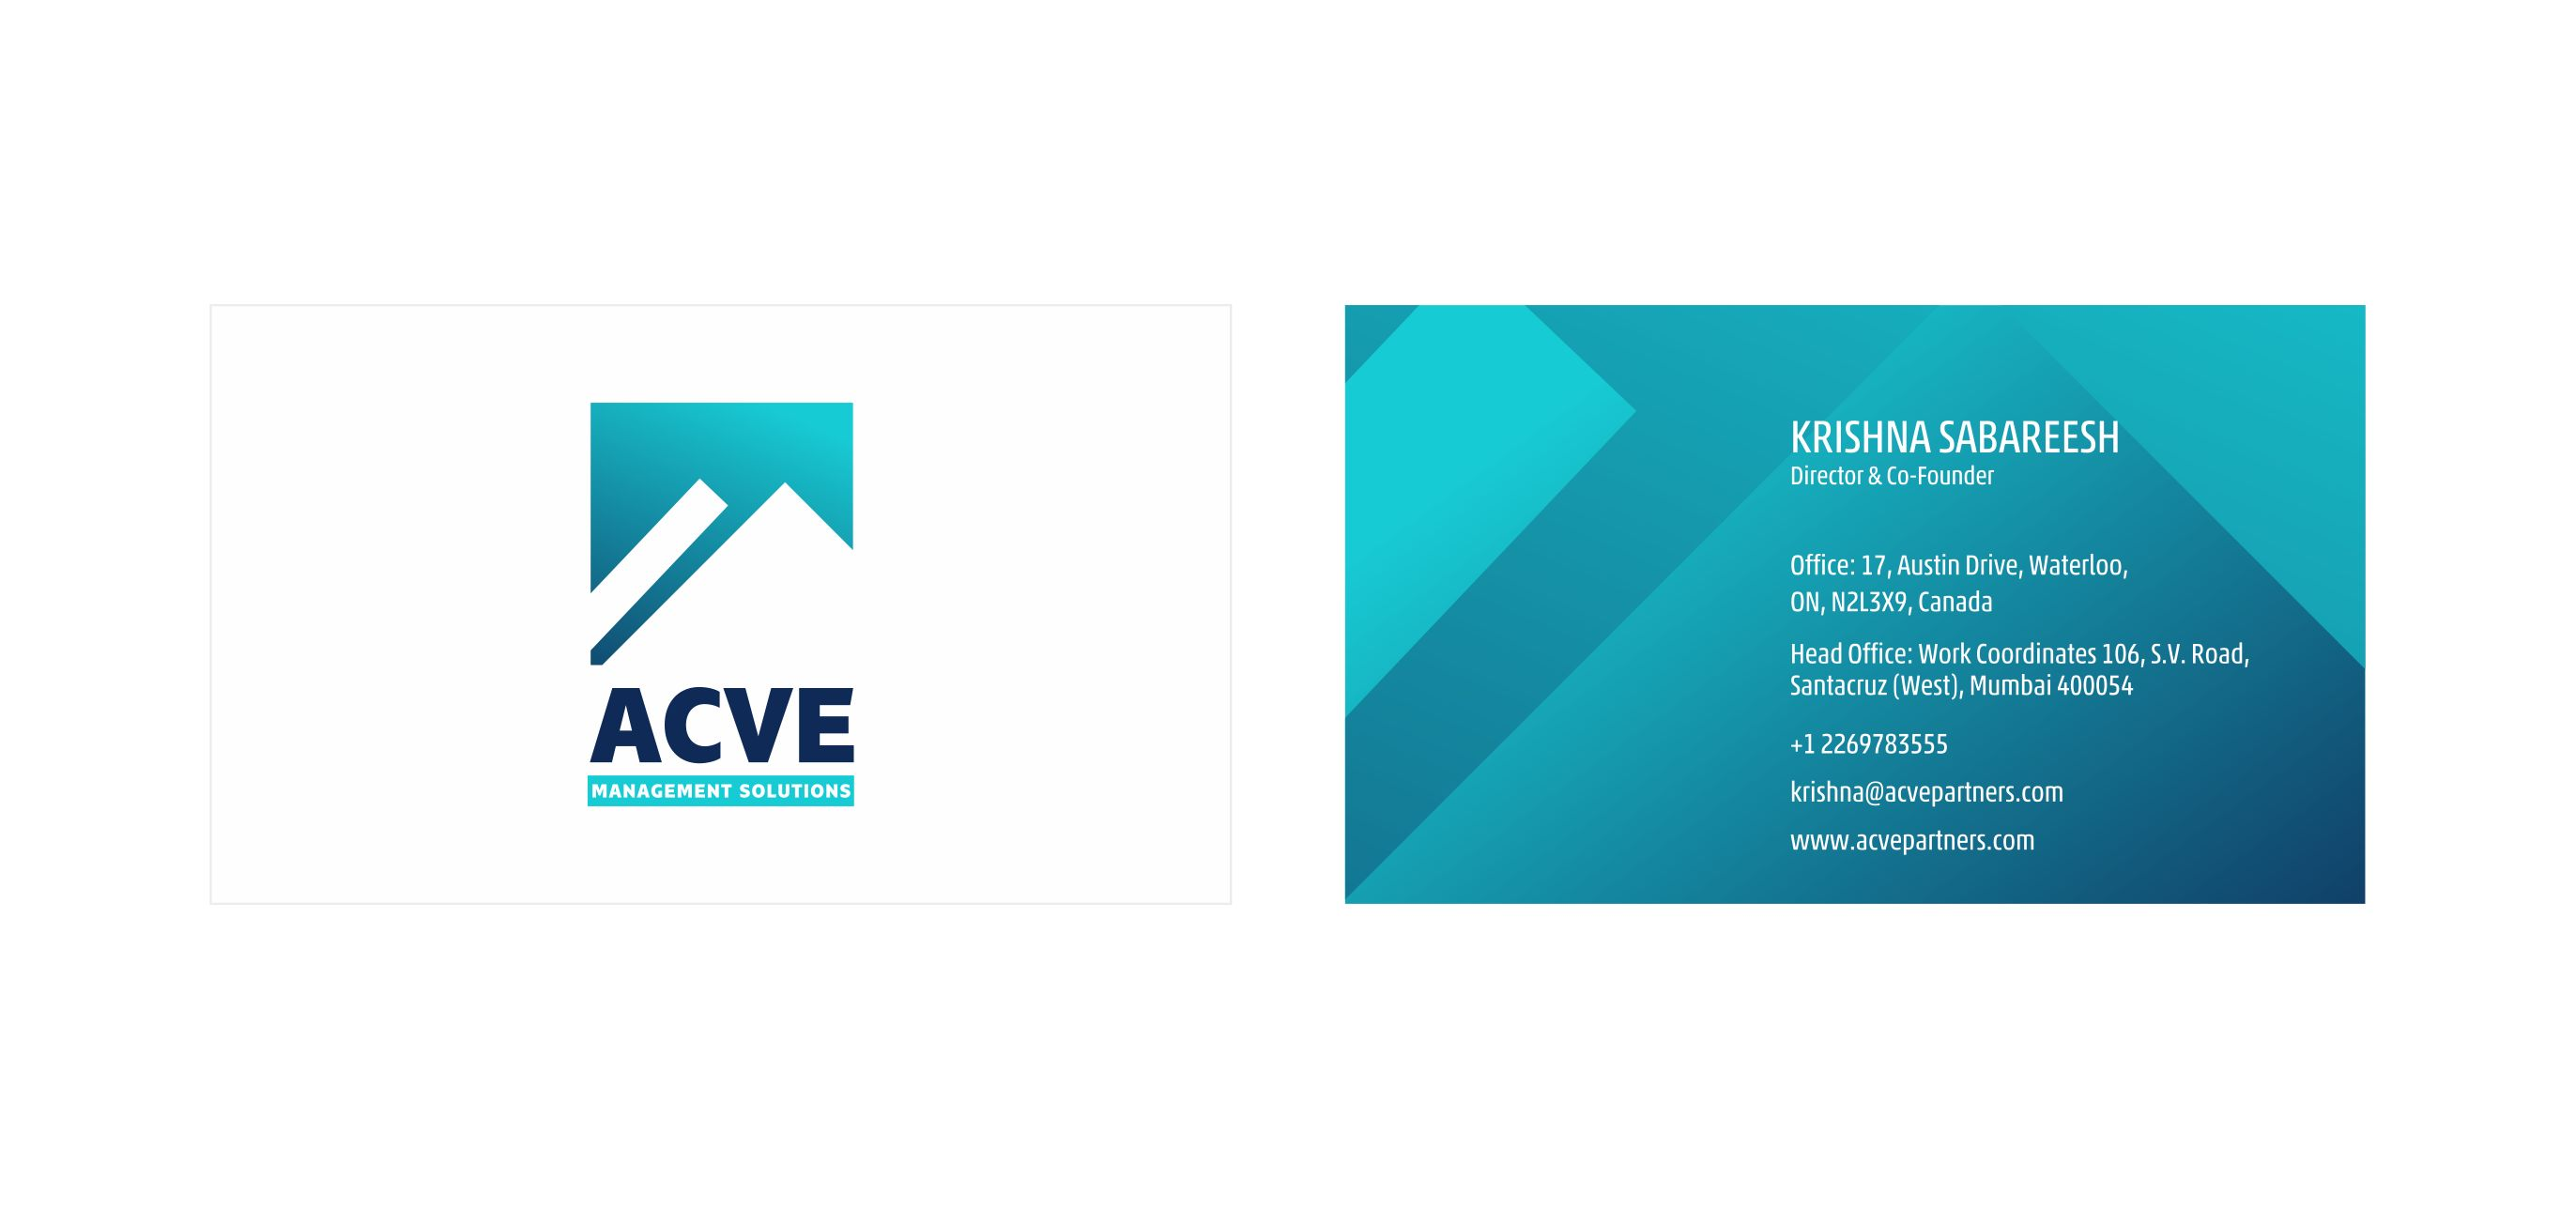 Visiting Card Design options Blue Gradients | Acve Management Solutions Mumbai